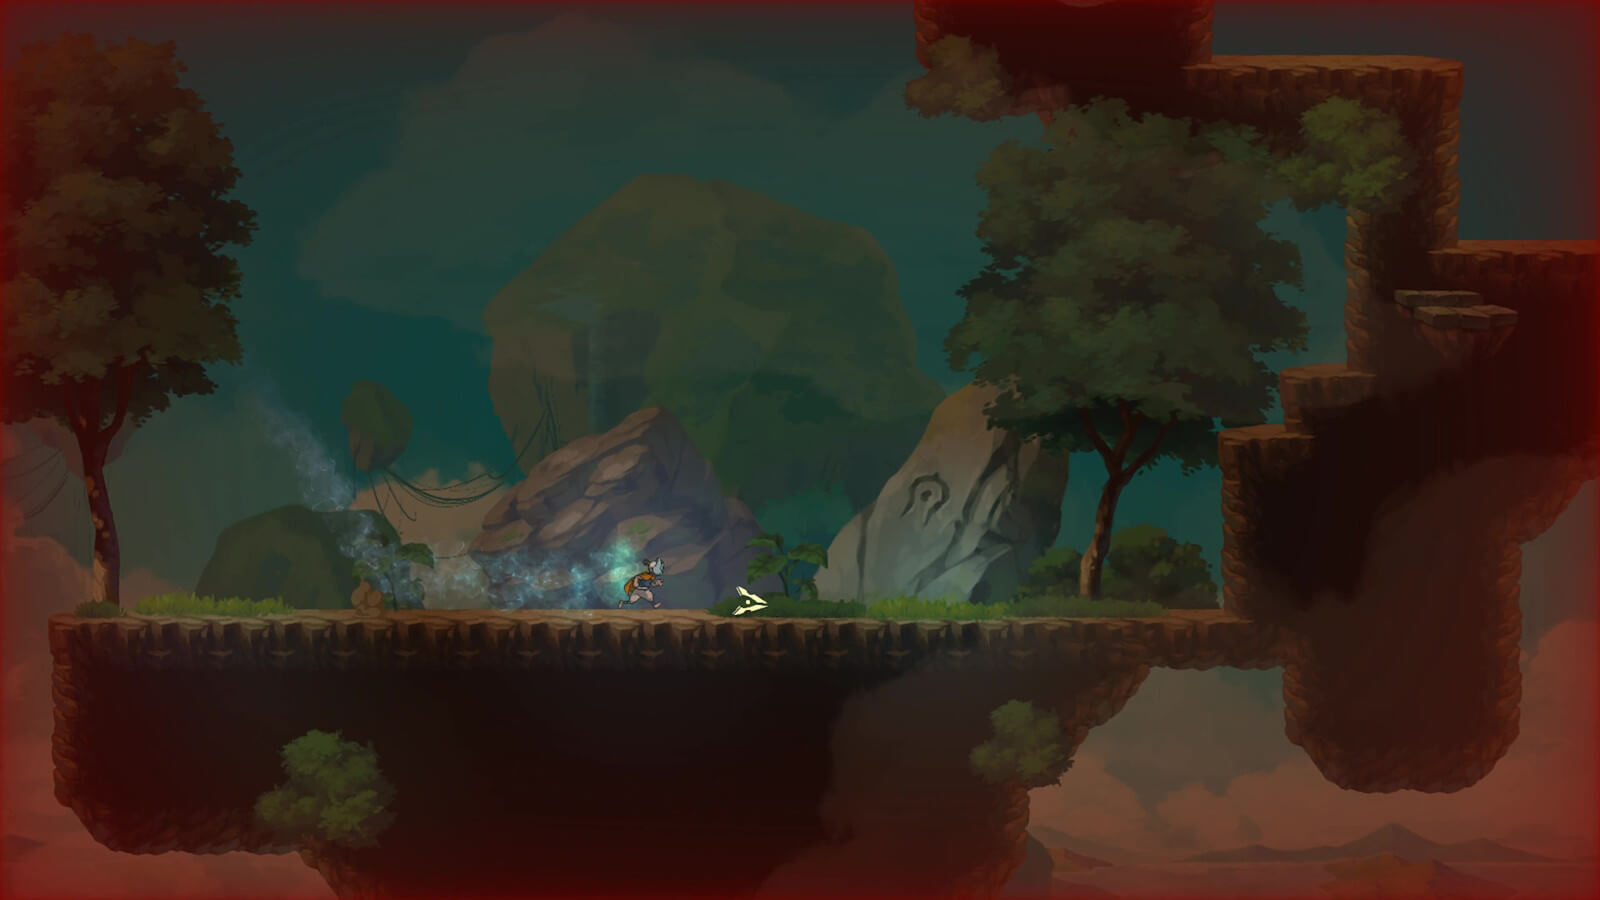 Player character runs across an island in the sky